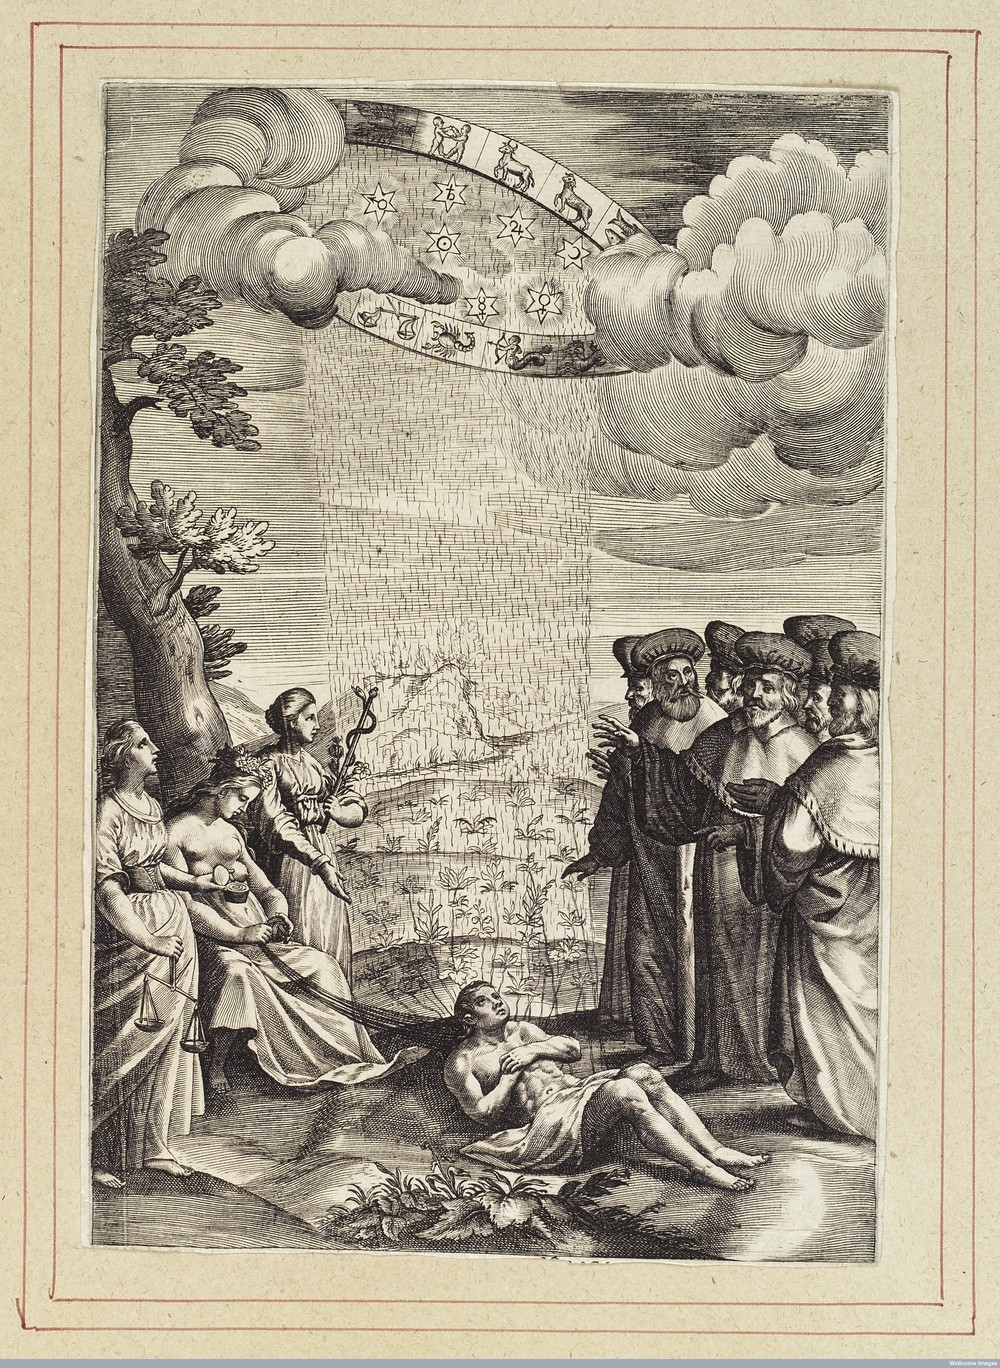 Image: France, likely 17th century, Wellcome Library L0040386.